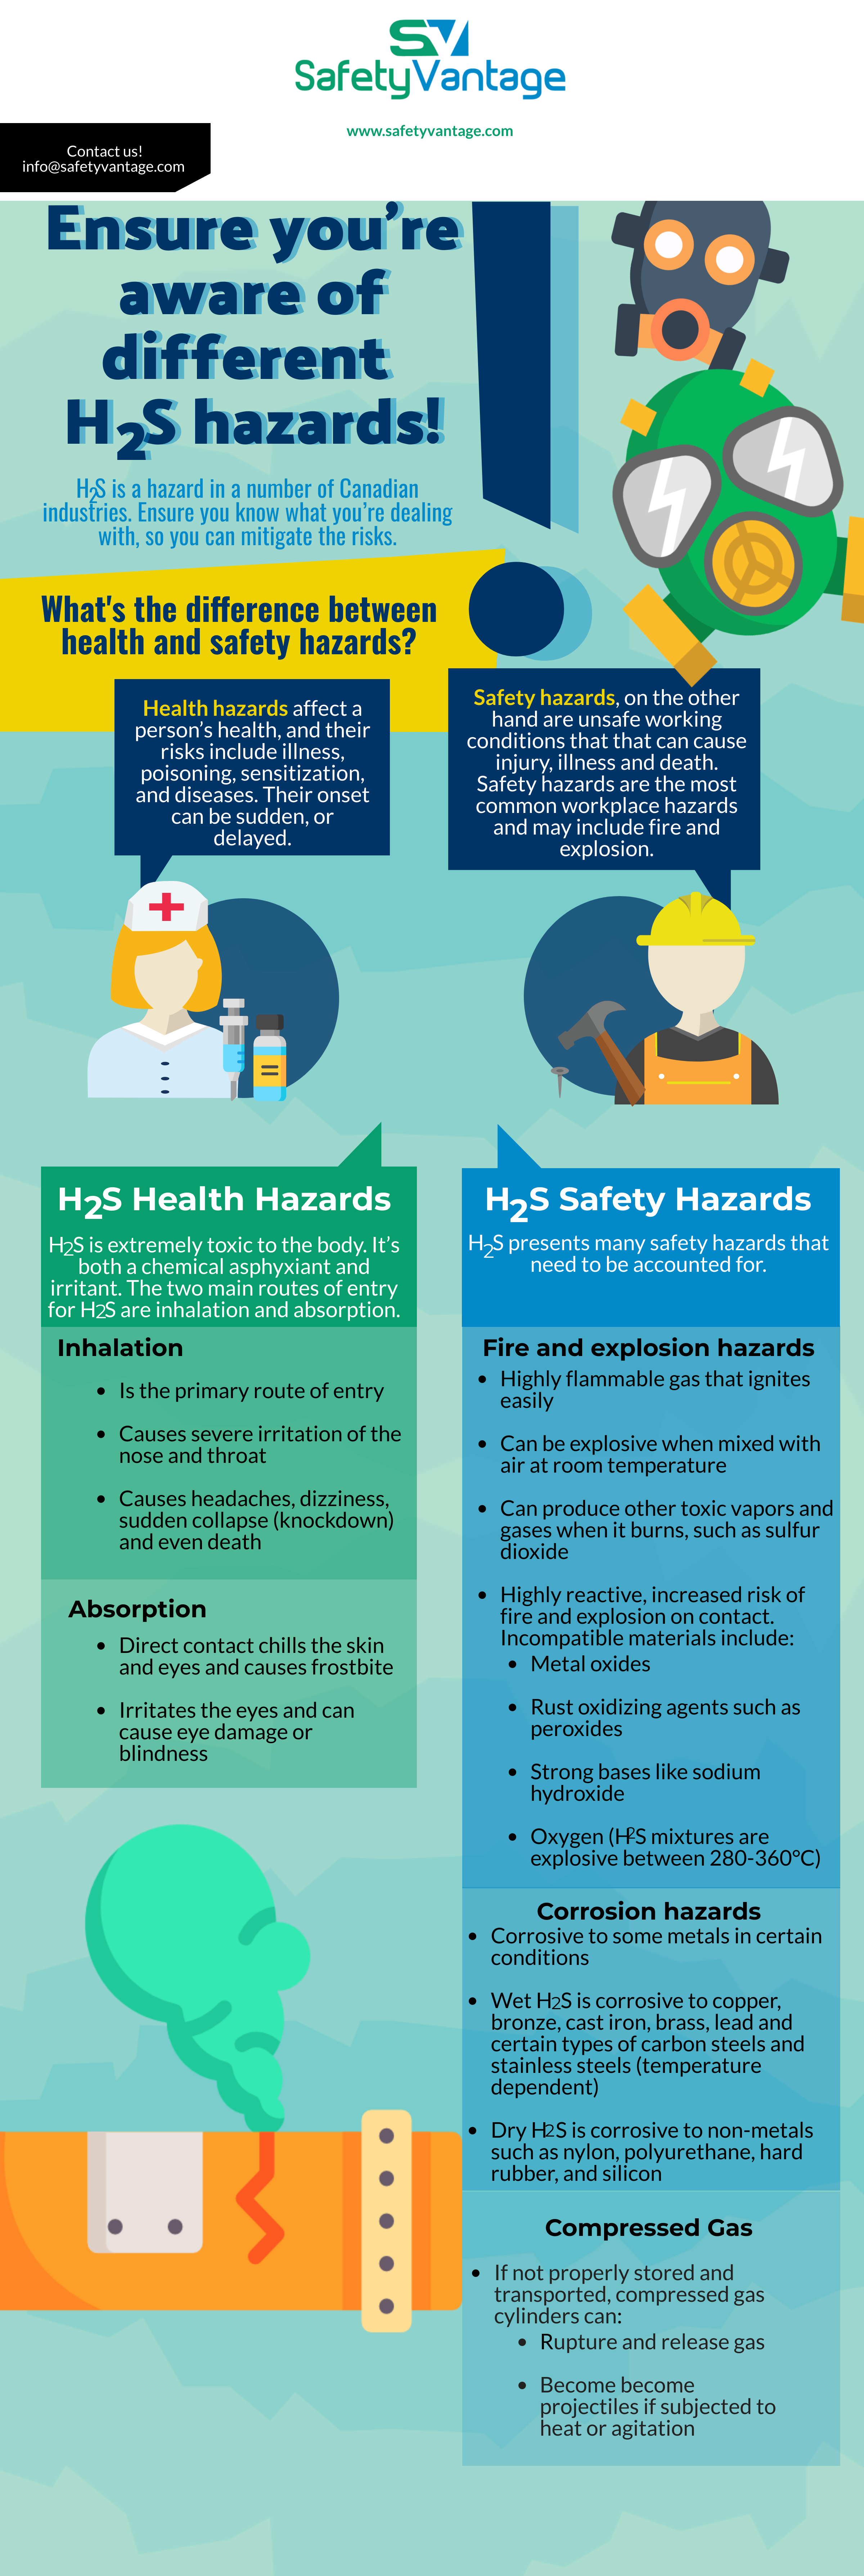 InfoGraphic - Hydrogen Sulfide is a hazard in a number of Canadian industries. Ensure you know what you are dealing with, so you can mitigate the risks.